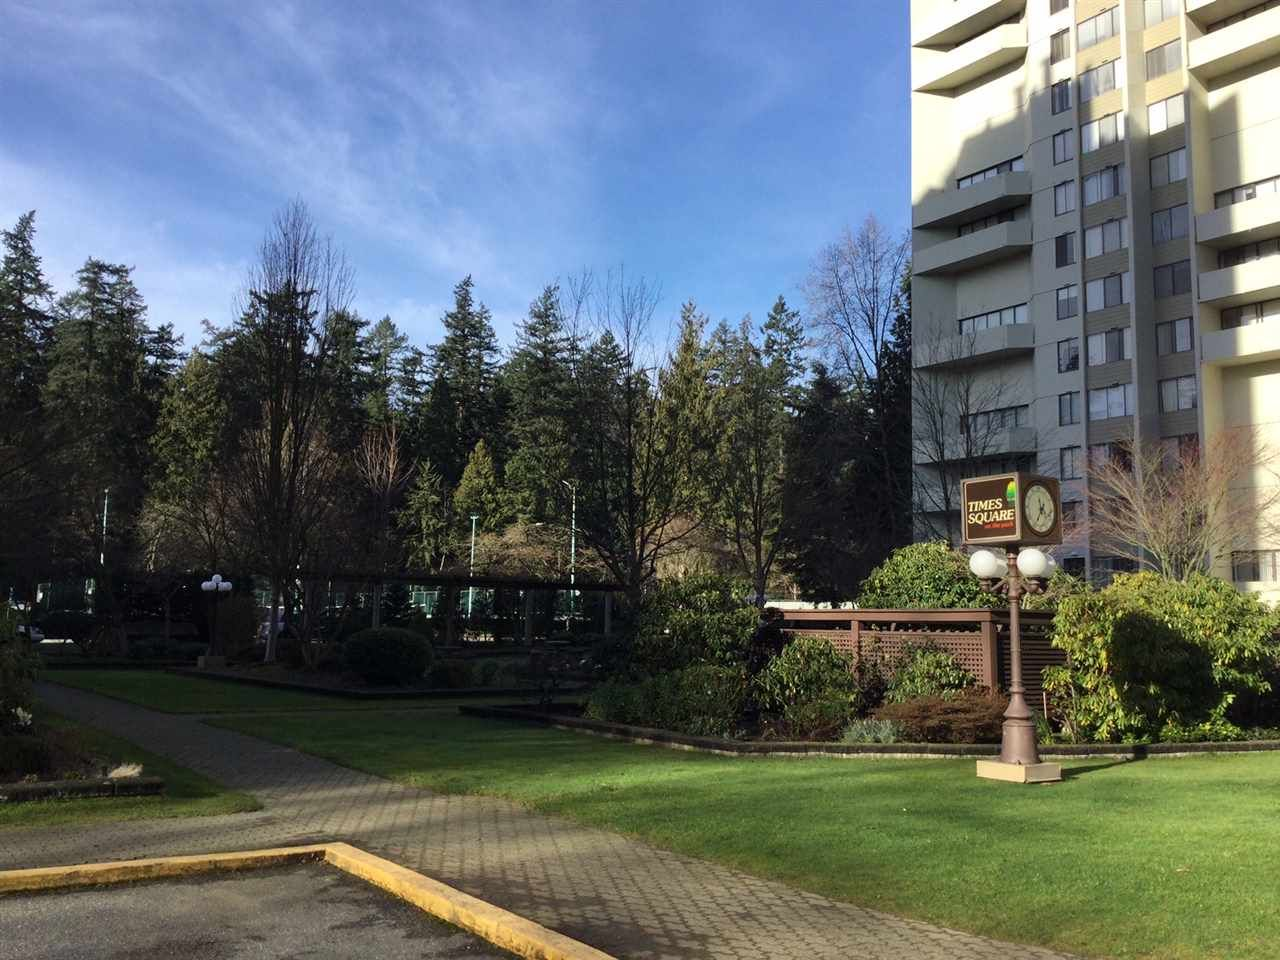 """Photo 2: Photos: 1802 4300 MAYBERRY Street in Burnaby: Metrotown Condo for sale in """"Times Square"""" (Burnaby South)  : MLS®# R2529822"""